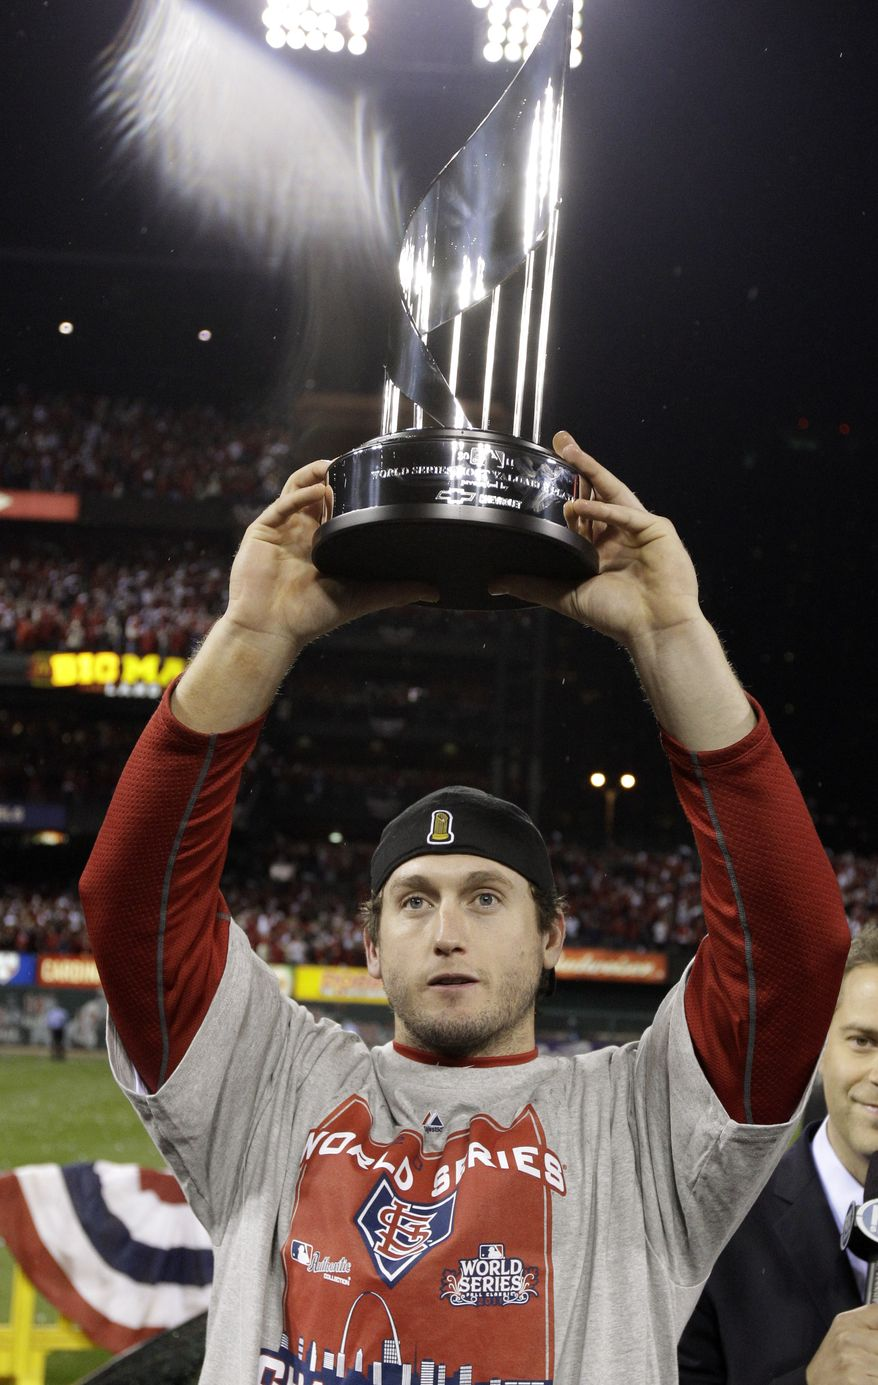 St. Louis Cardinals' David Freese holds up the MVP trophy after Game 7 of baseball's World Series against the Texas Rangers Friday, Oct. 28, 2011, in St. Louis. The Cardinals won 6-2 to win the series. (AP Photo/Charlie Riedel)